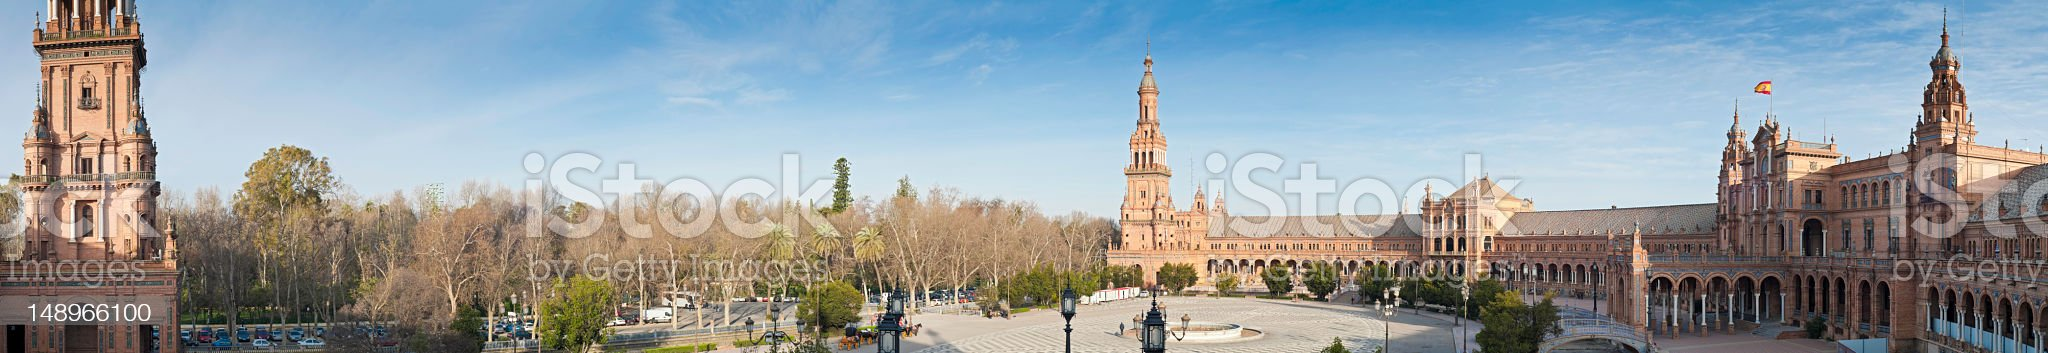 Seville Plaza de España panorama royalty-free stock photo